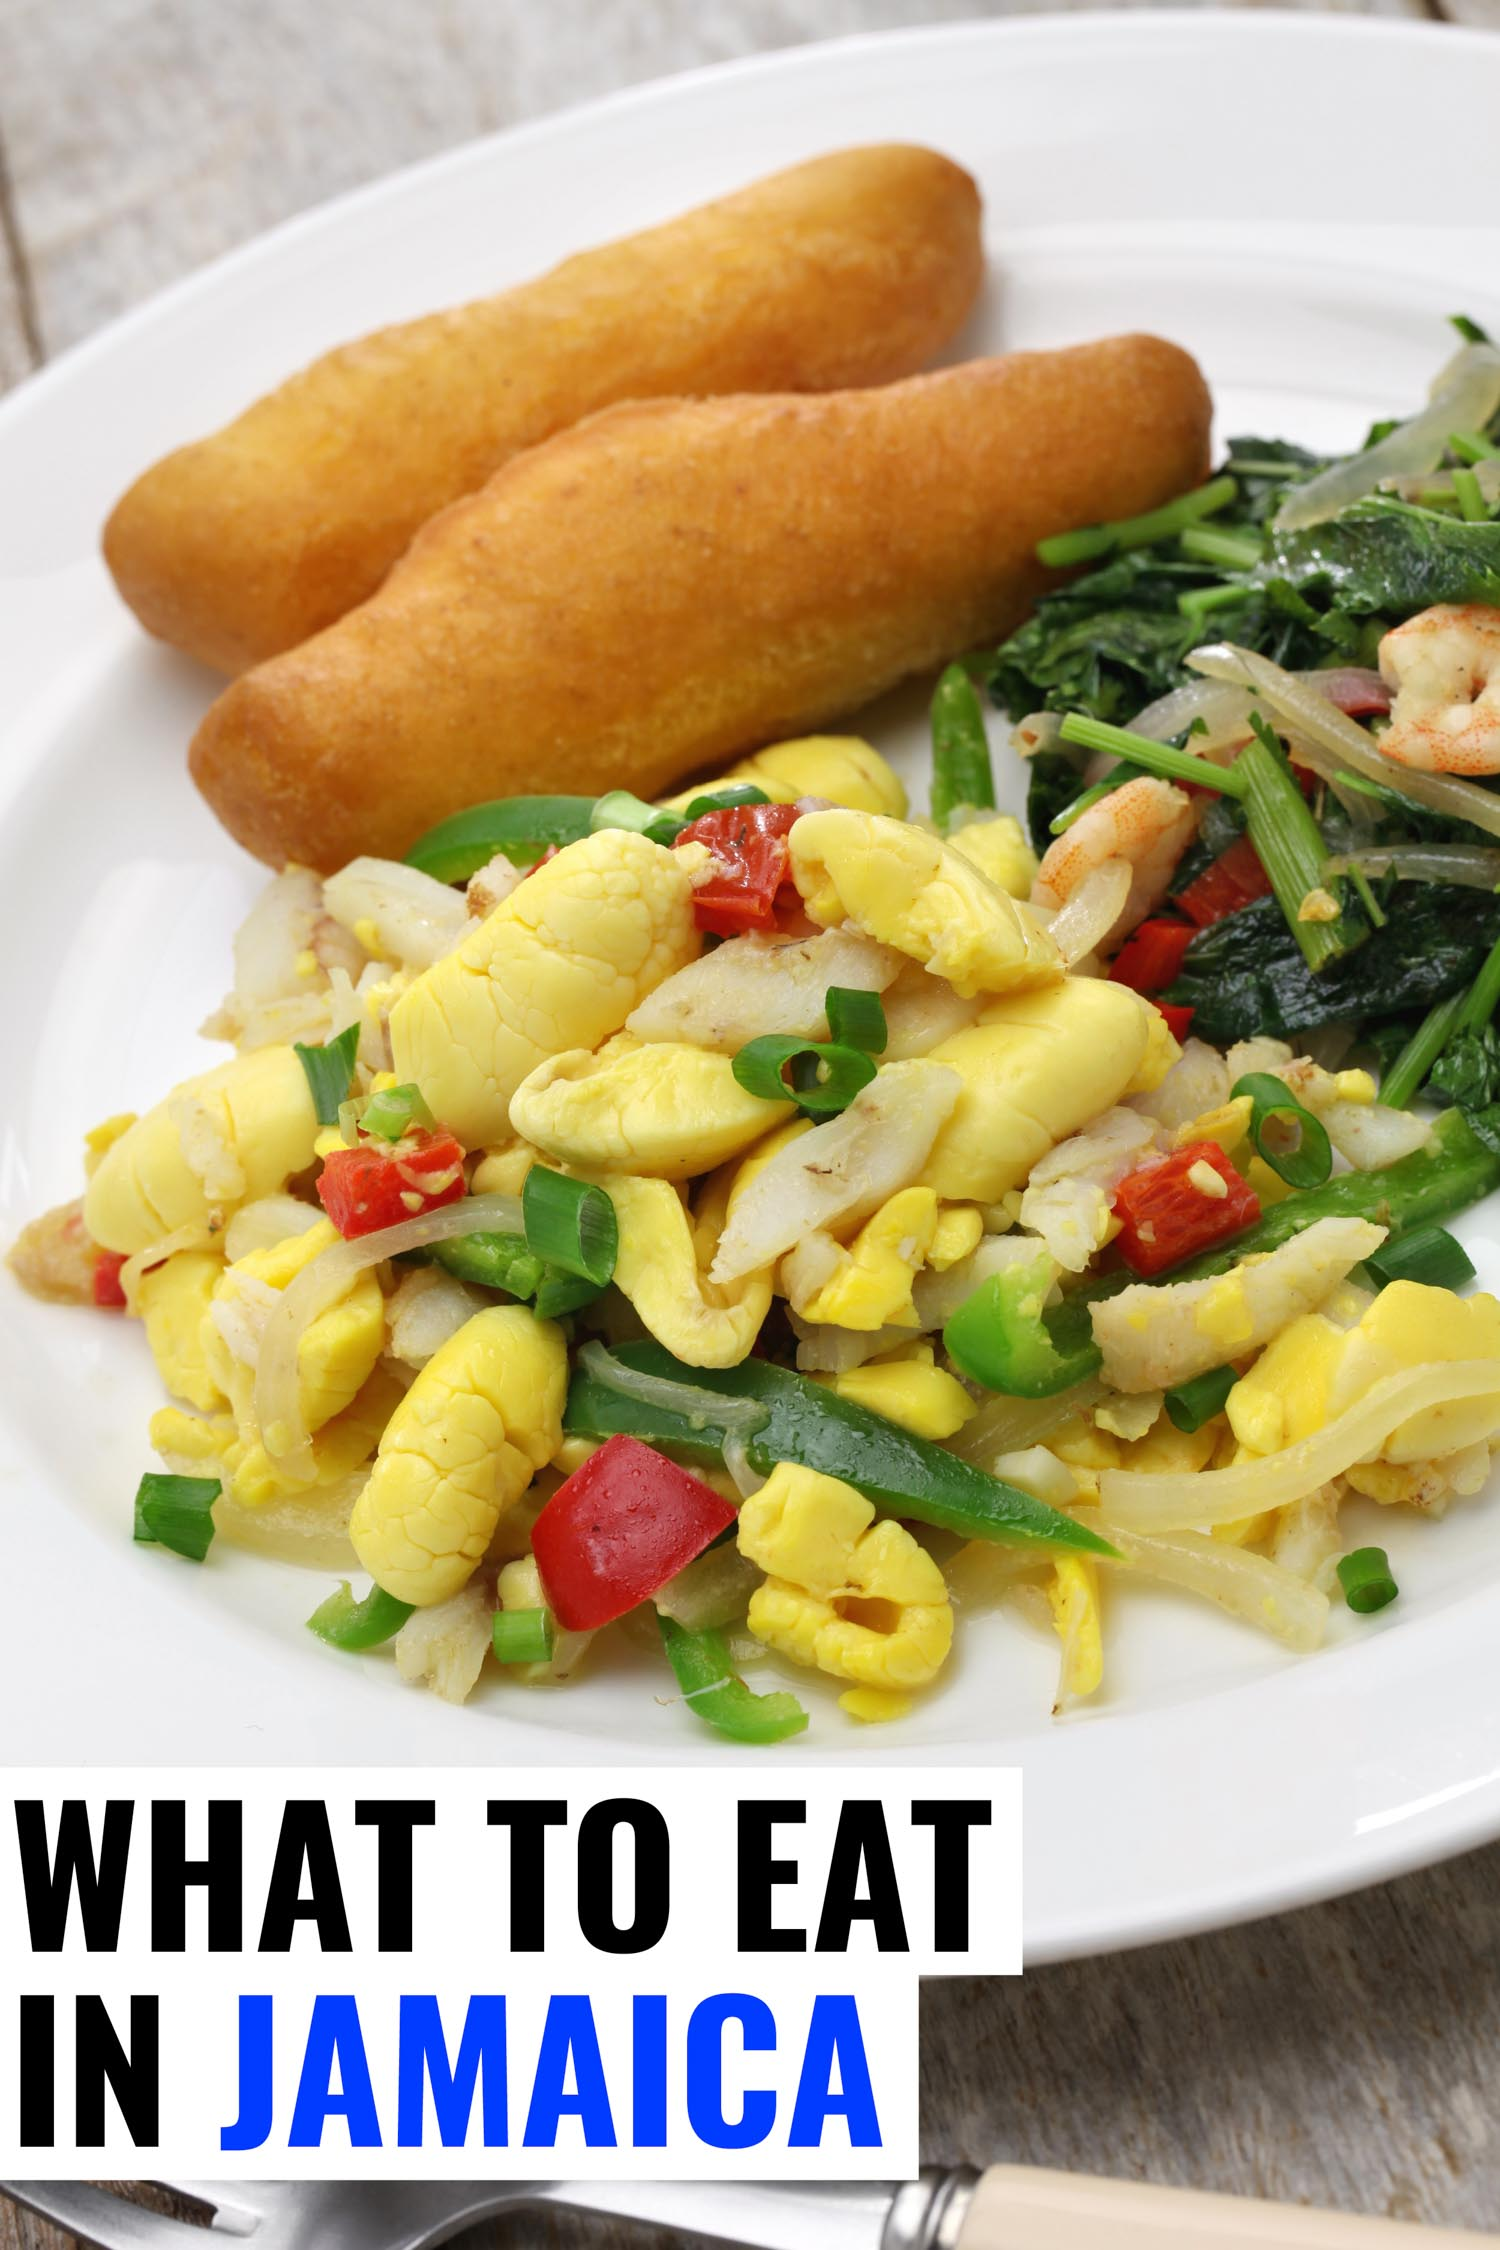 festival akee and salt fish are the most popular Jamaican foods